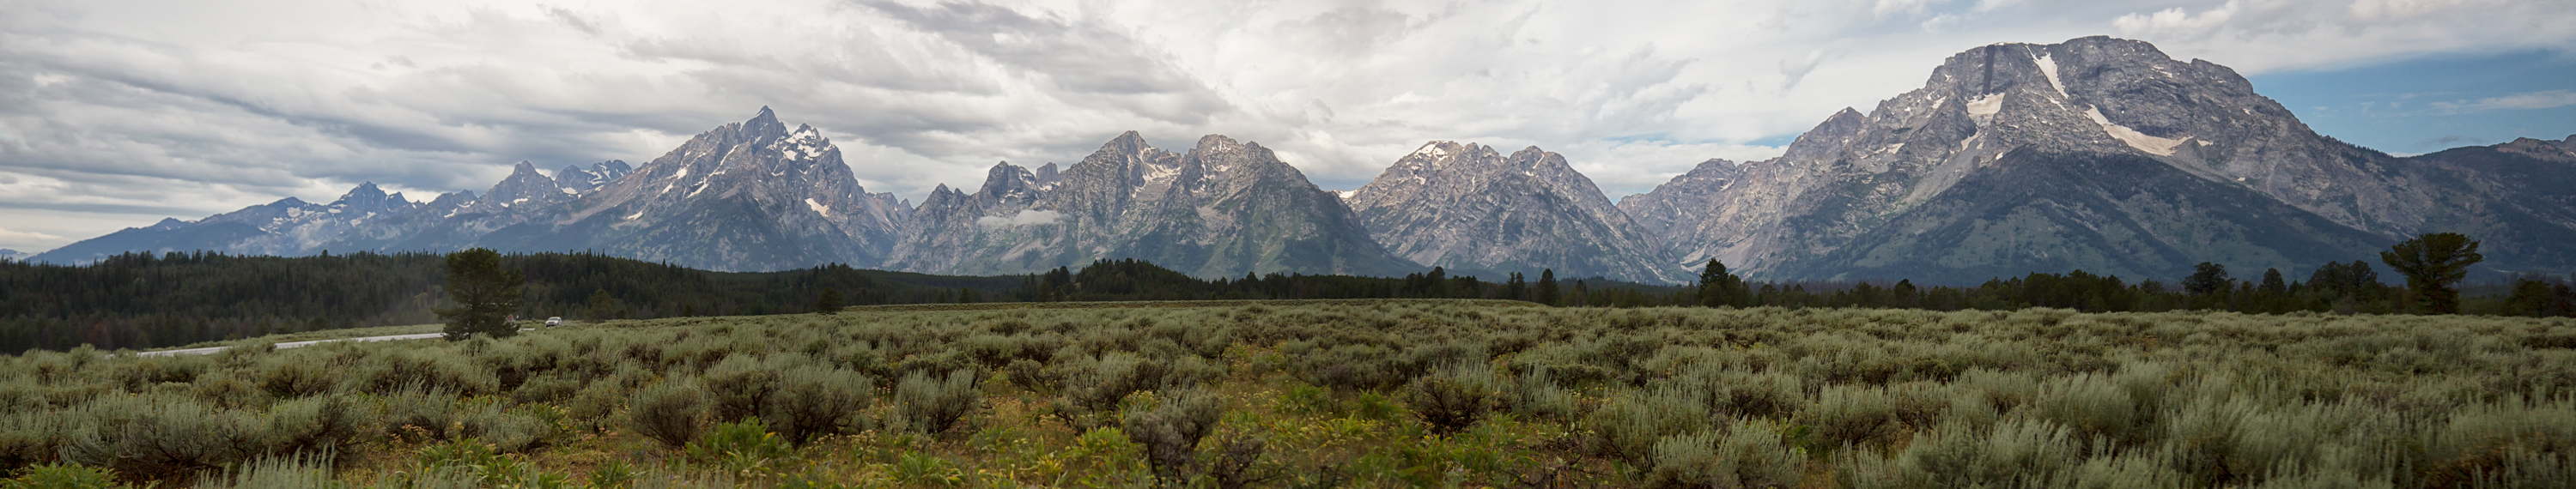 Tetons in Grand Teton National Park with Jackson Hole Wildlife Safaris